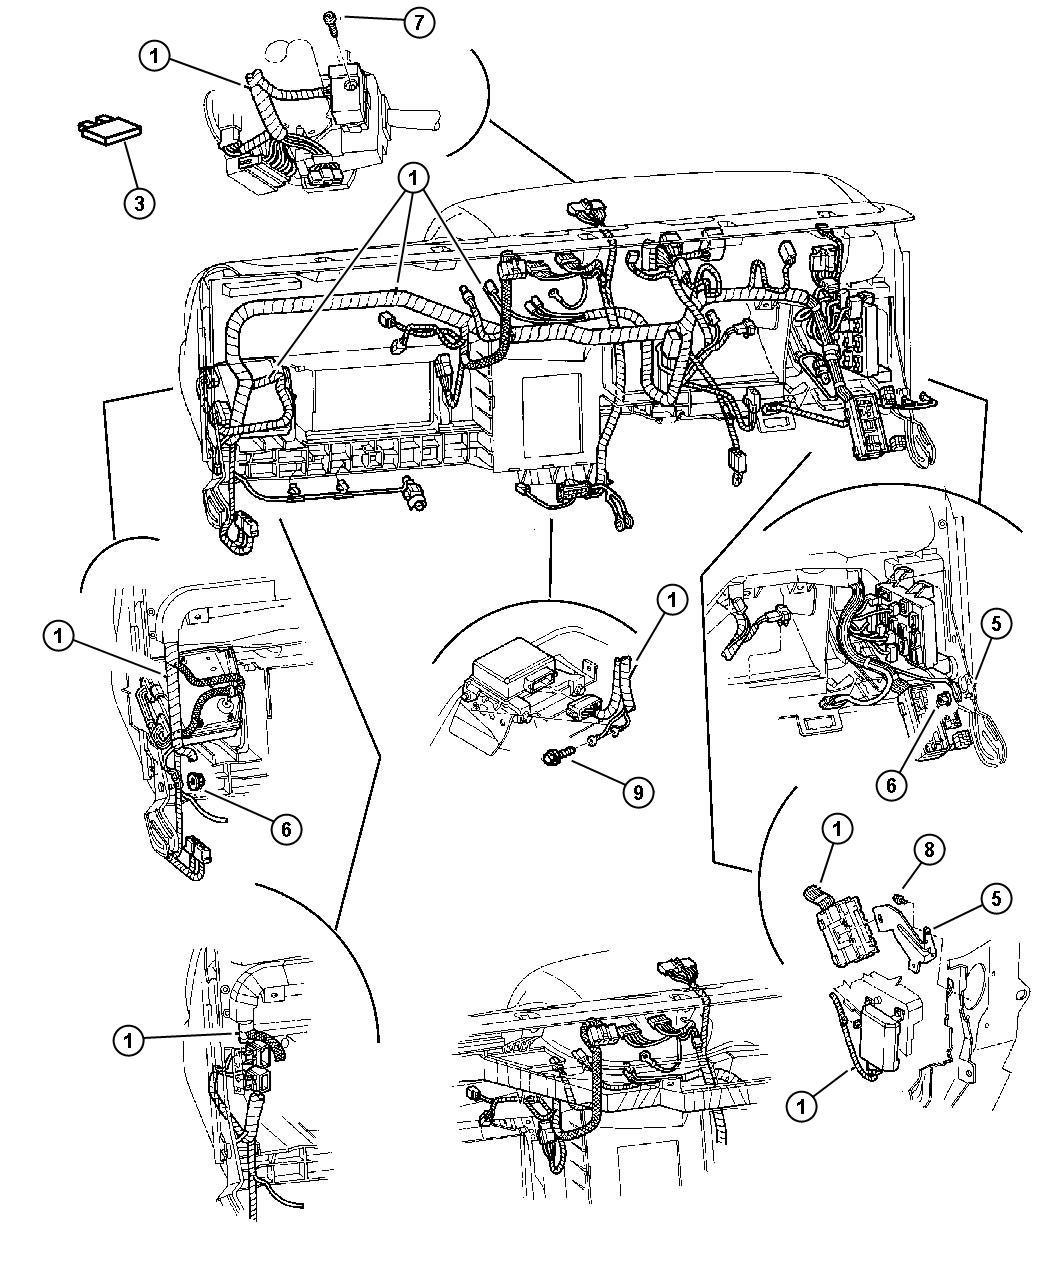 2000 Dodge Durango Engine Performance Wiring Diagram